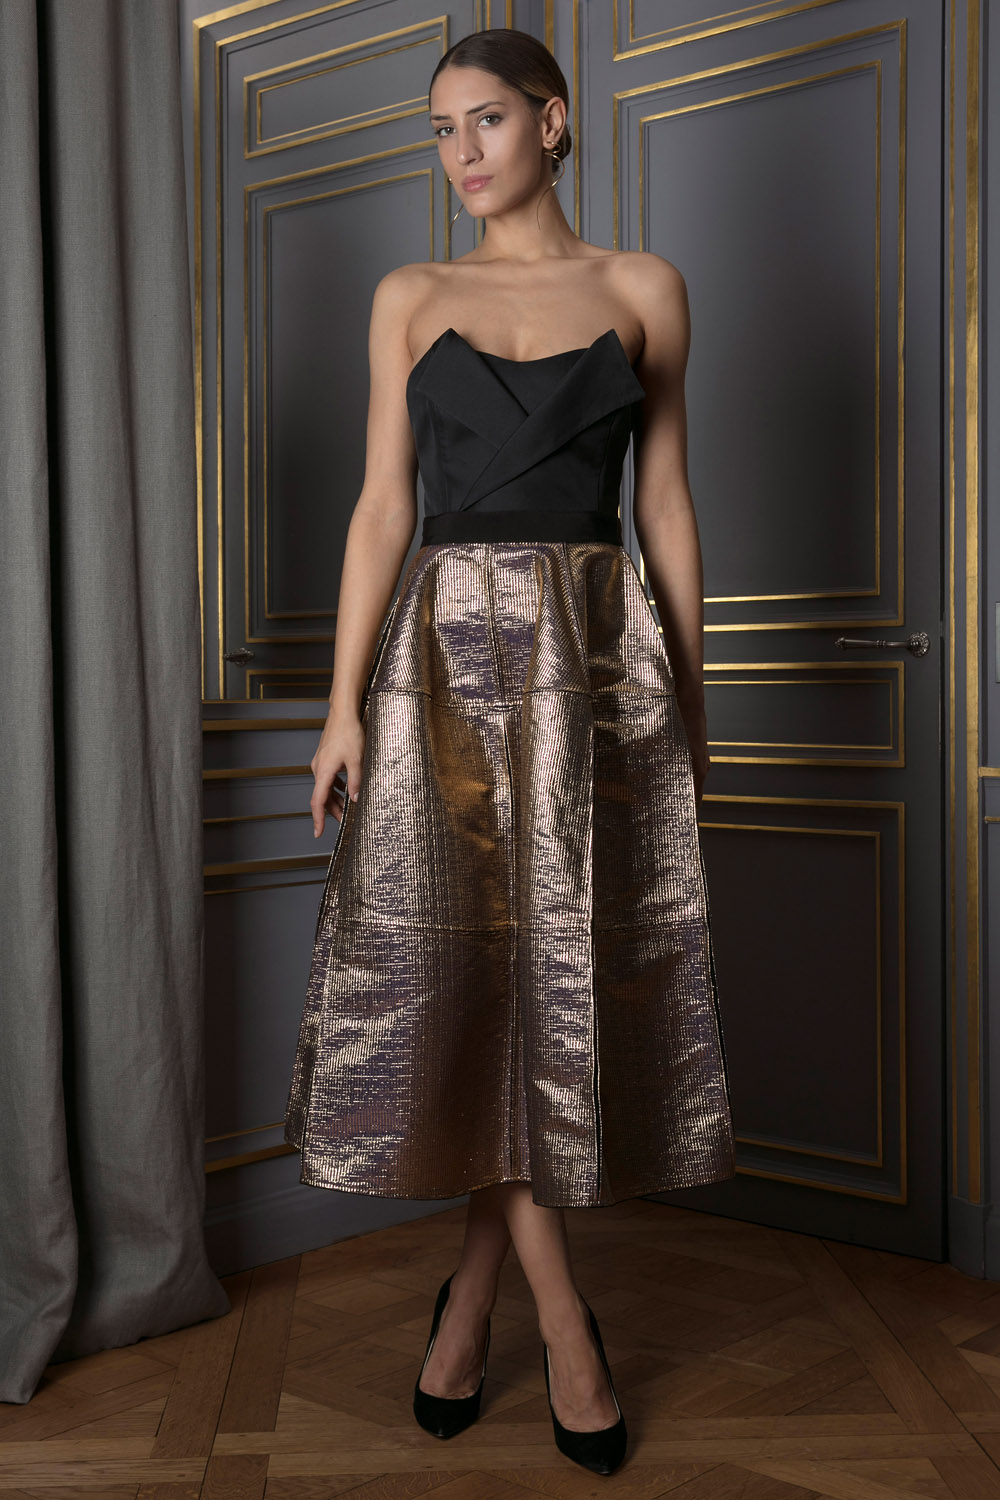 Metallic gold midi skirt